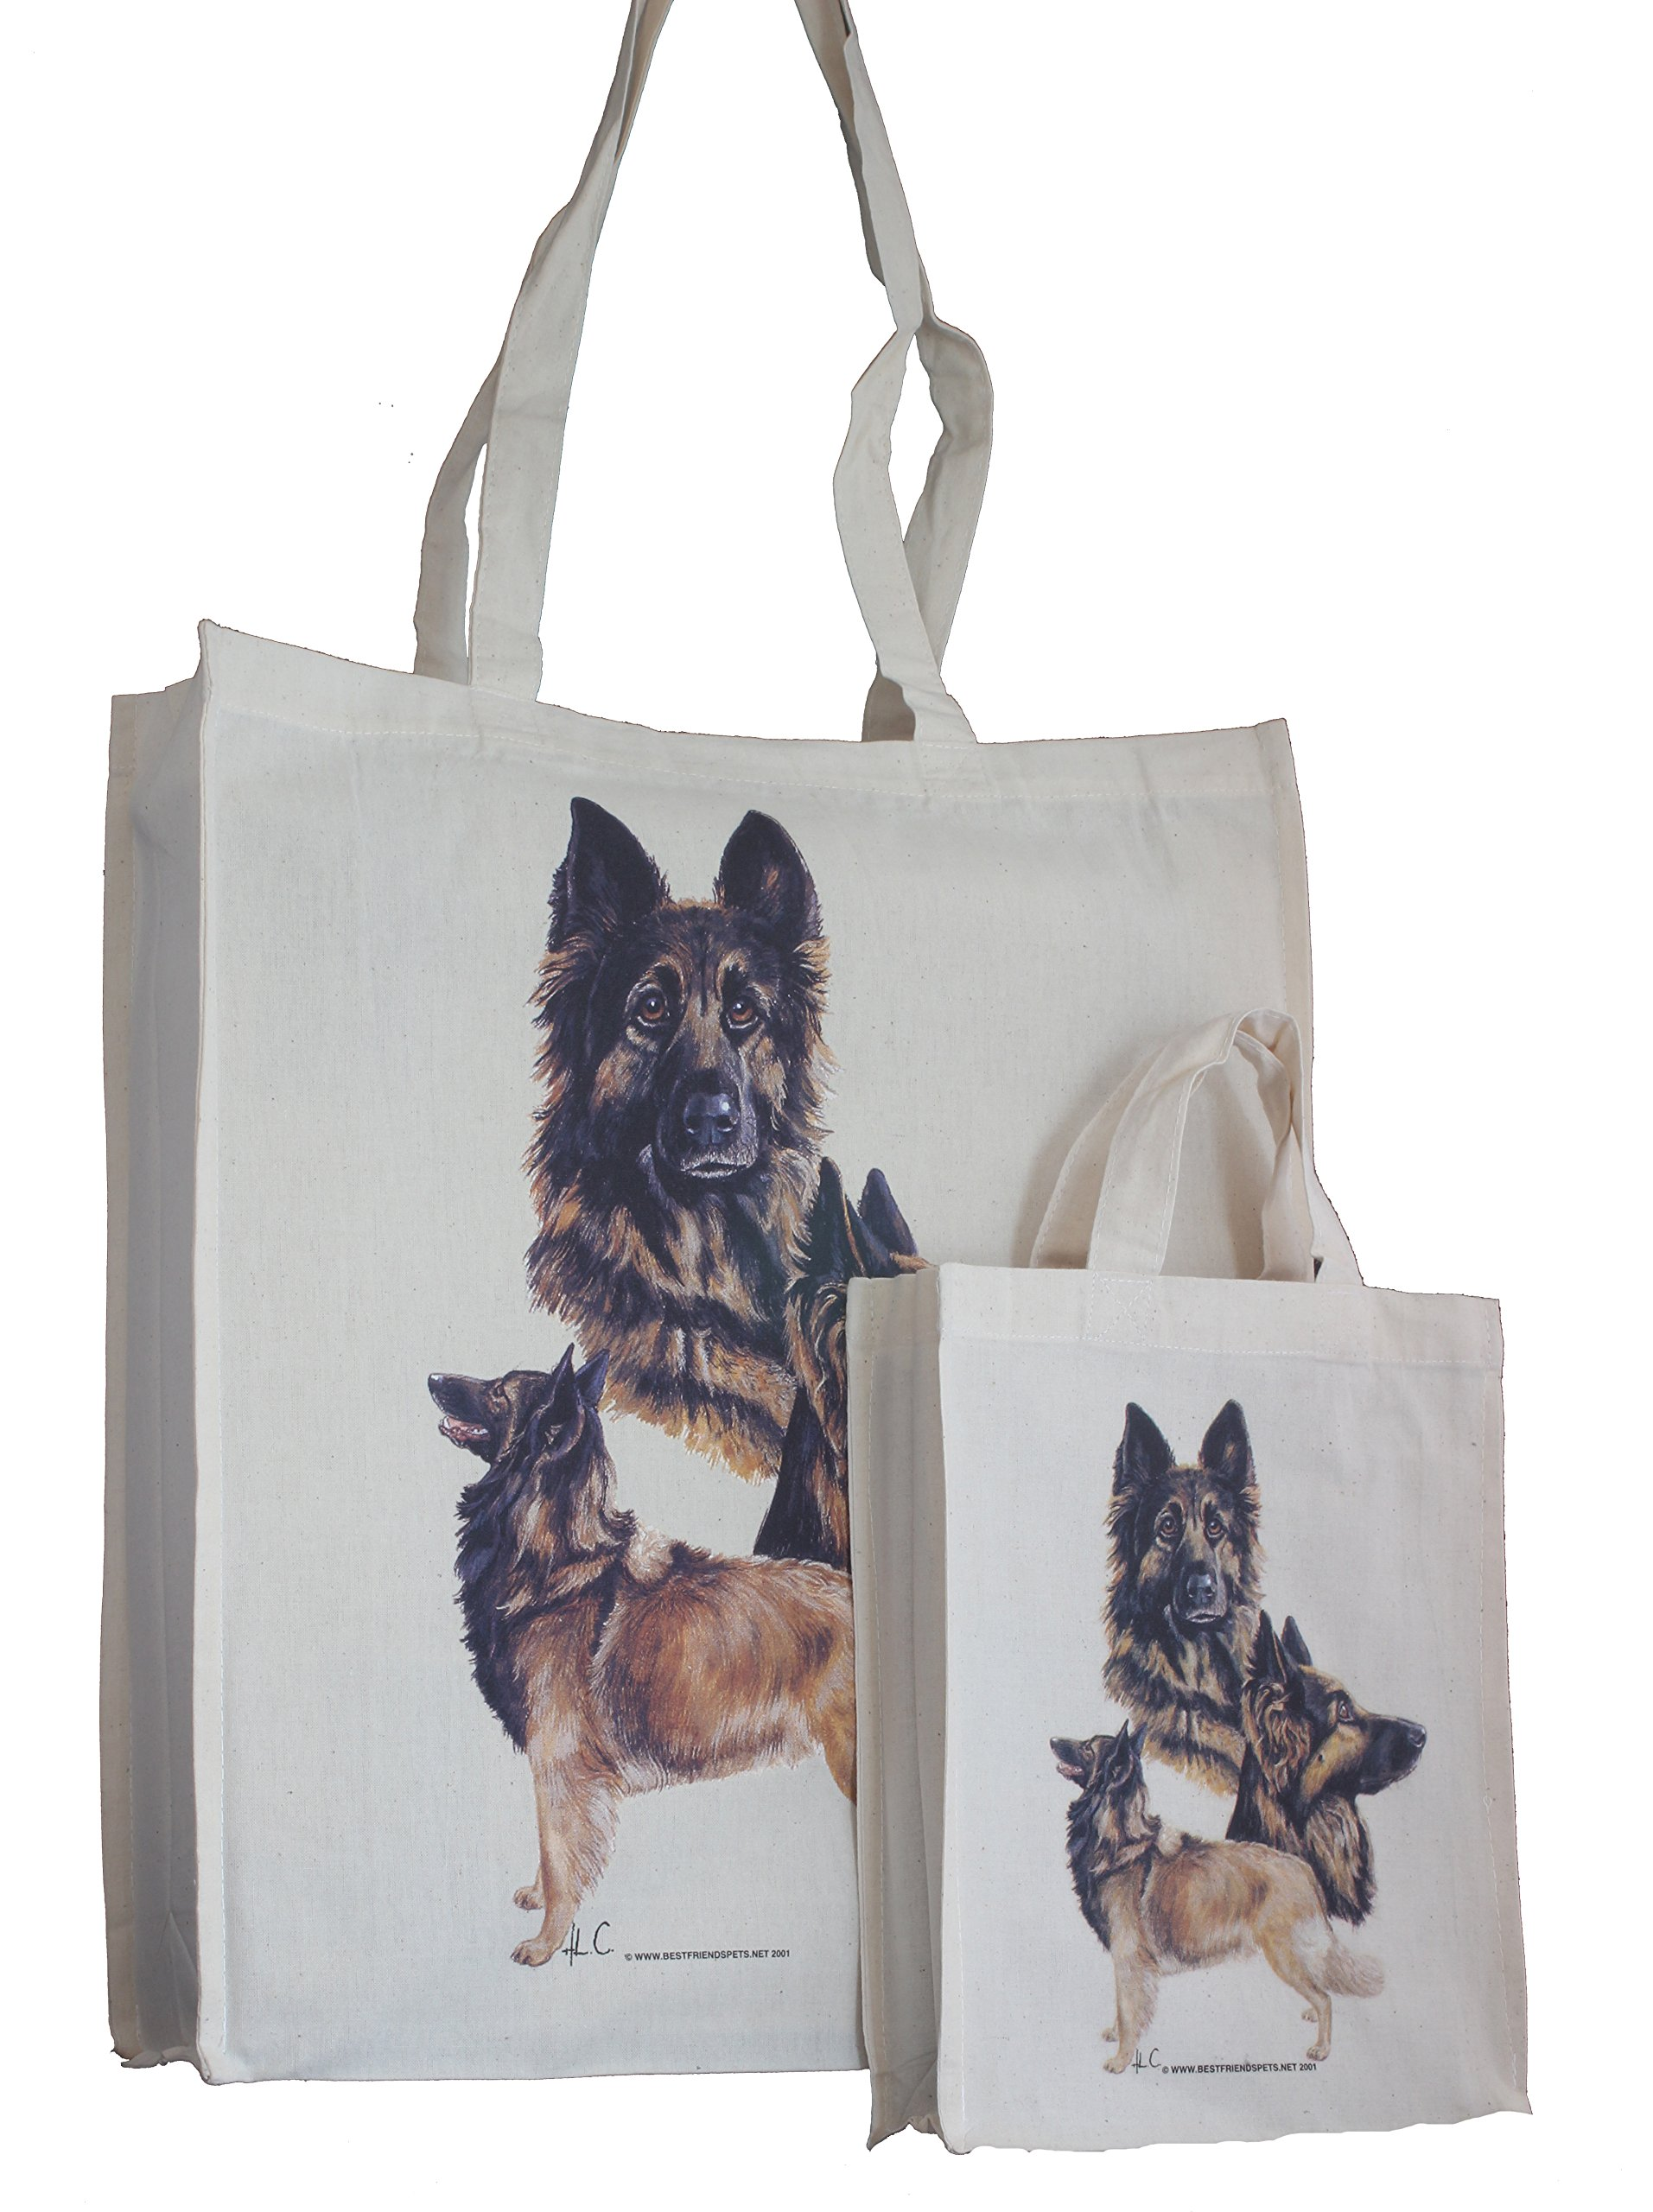 Belgian Tervuren Breed of Dog Adult and Child Shopping or Packed Lunch / Craft / Dog Treats Matching Cotton Bag Tote…